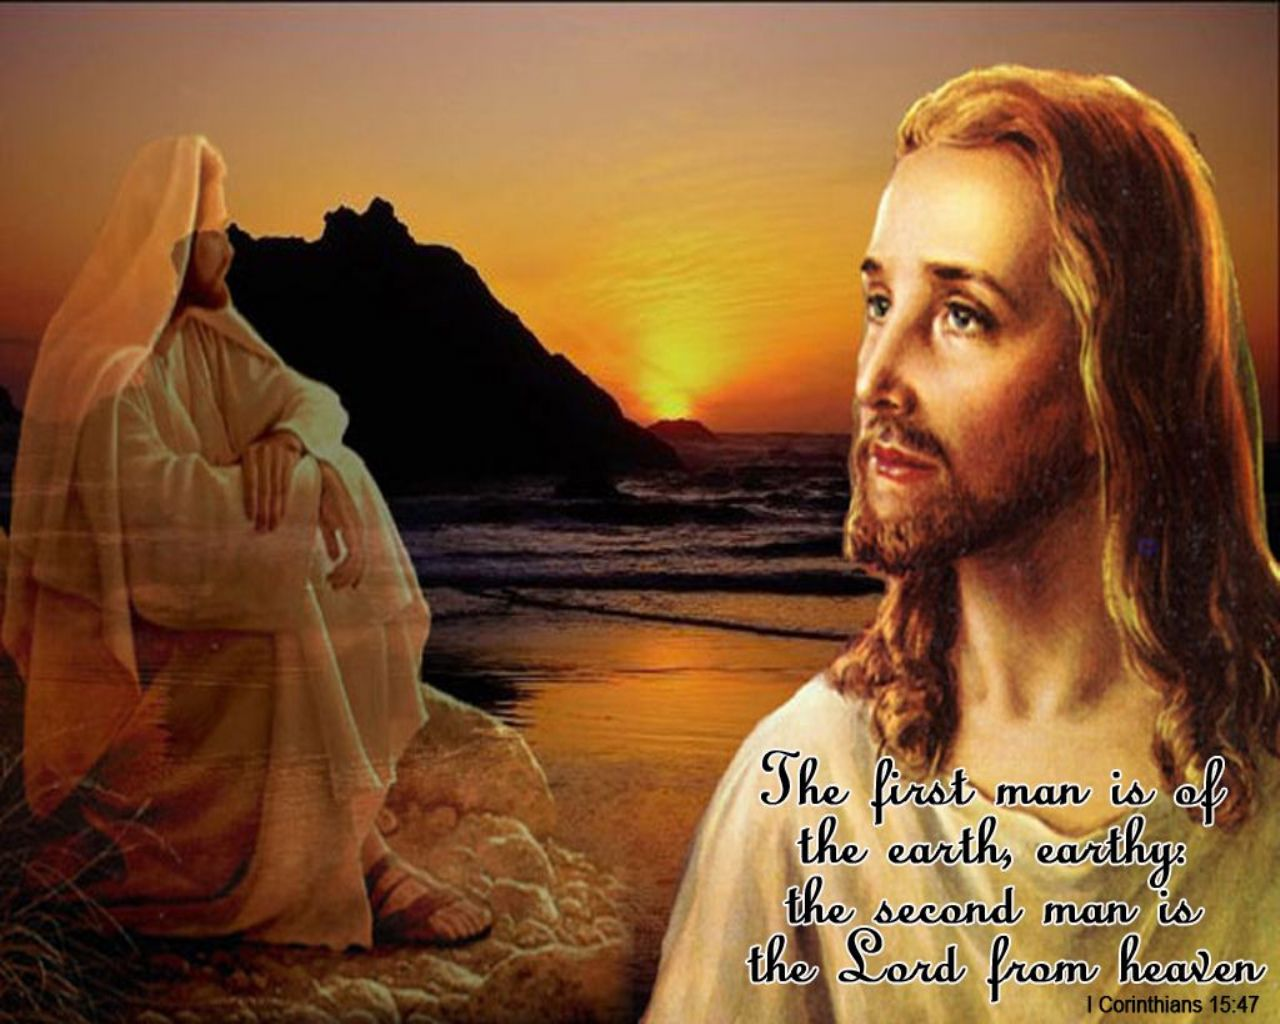 Real jesus christ pictures Did Jesus Christ Really Exist? Proving Jesus